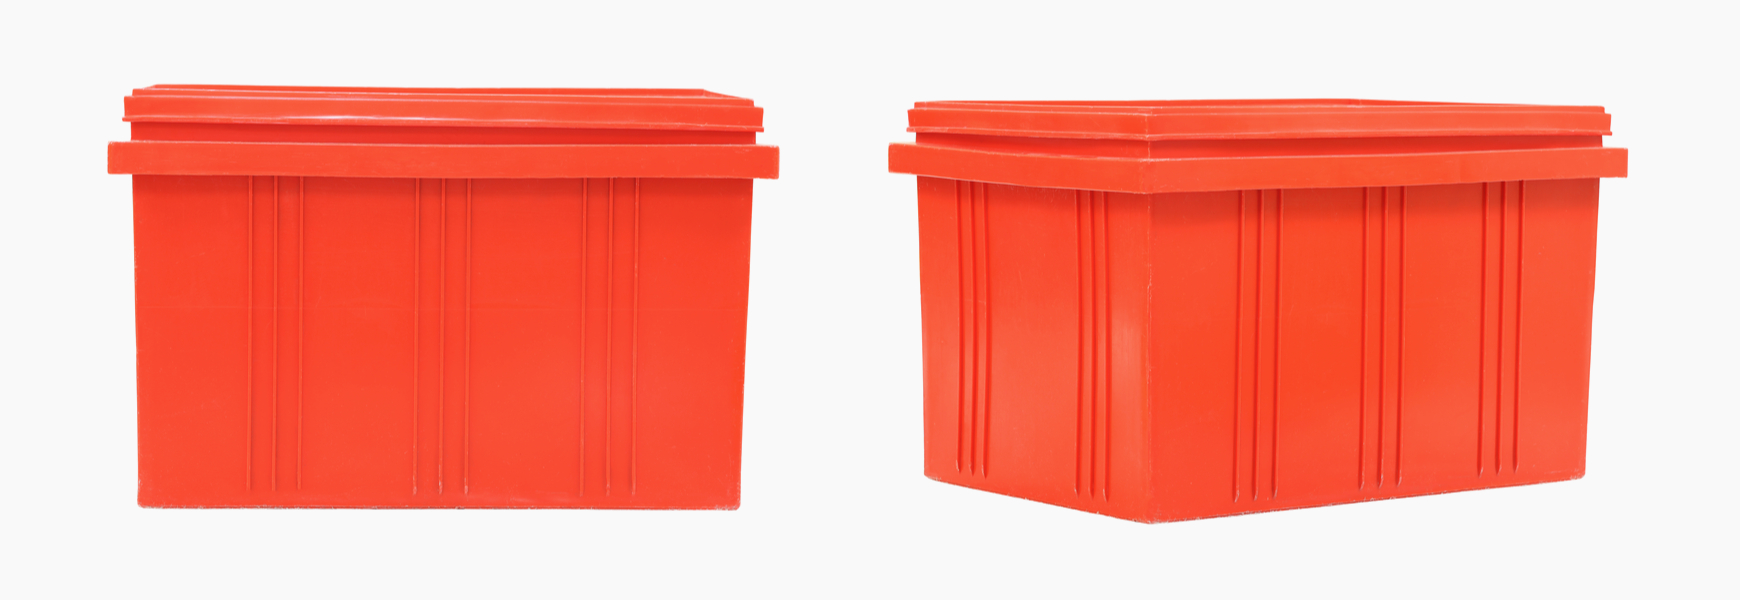 red plastic box storage for defective products